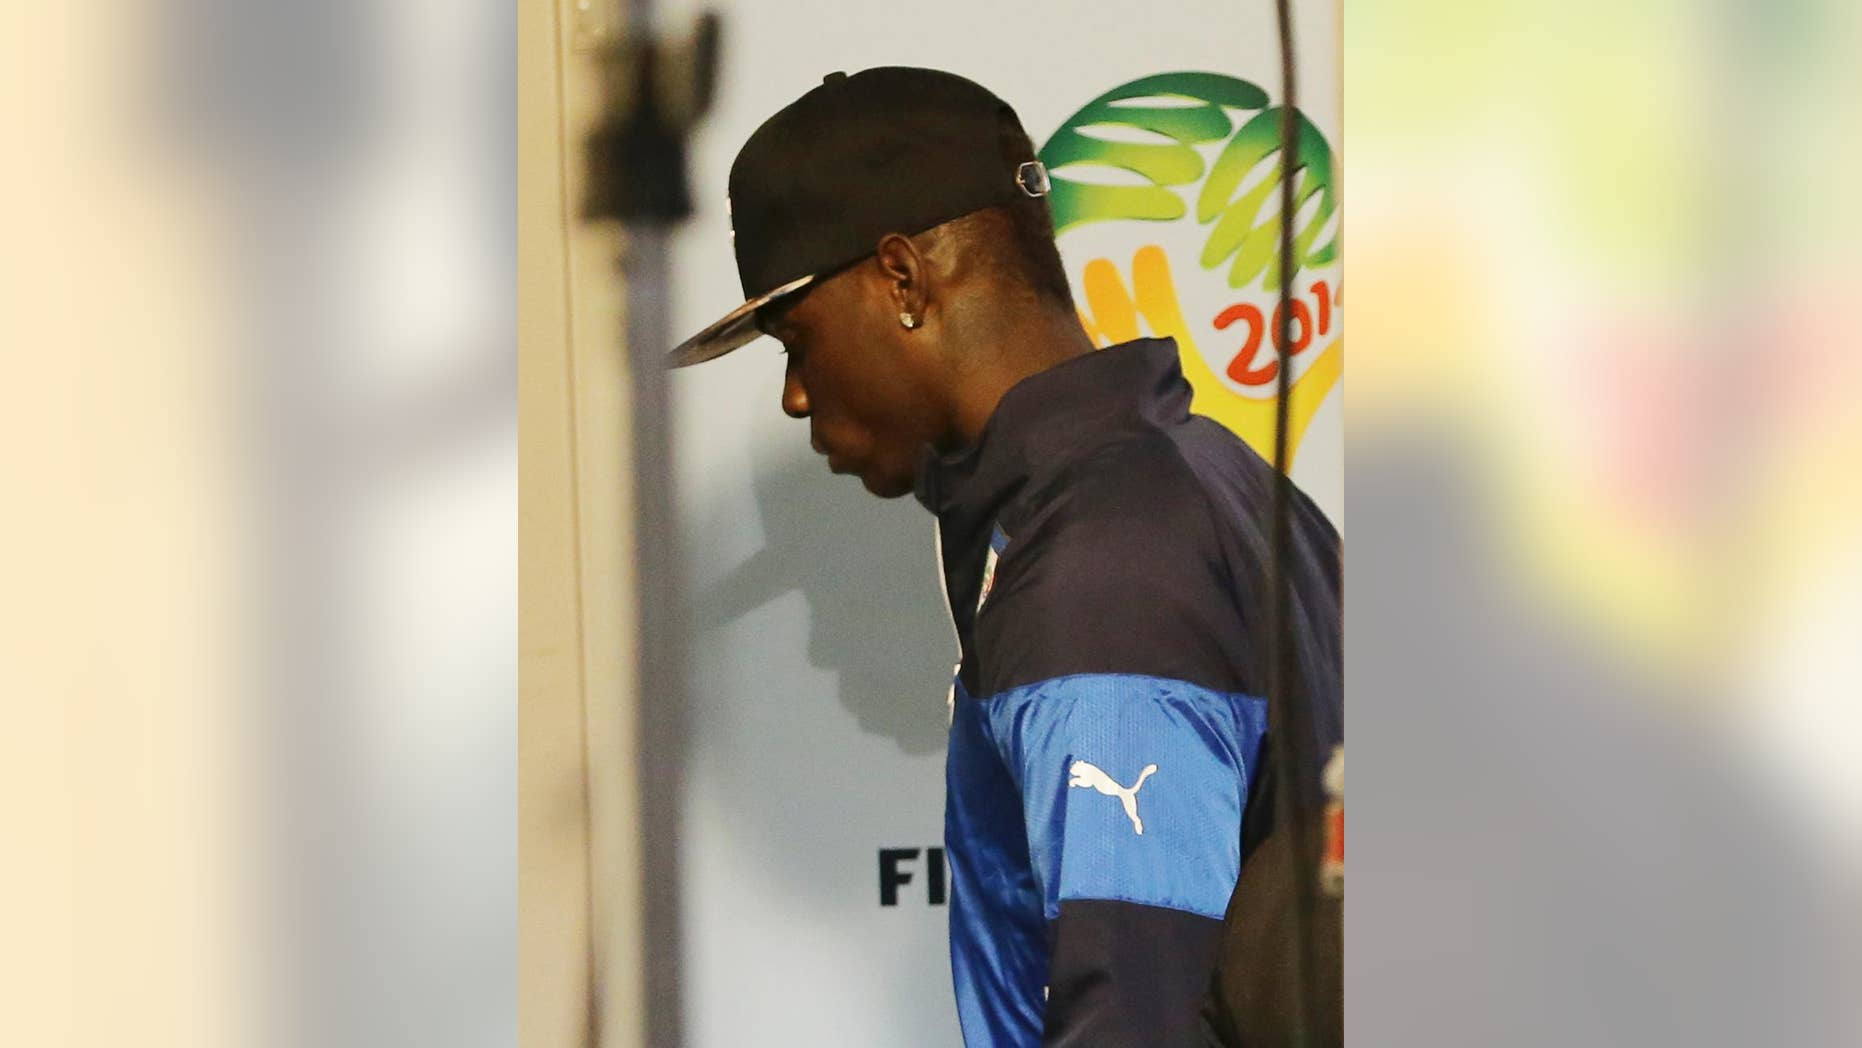 Italy forward Mario Balotelli walks away after the group D World Cup soccer match between Italy and Uruguay at the Arena das Dunas in Natal, Brazil, Tuesday, June 24, 2014. Uruguay won 1-0. Uruguay won 1-0. The four-time champion Italy is heading home after the group phase for a second time in four years. Head coach Cesare Prandelli and football federation president Giancarlo Abete both resigned moments after the match. (AP Photo/Antonio Calanni)